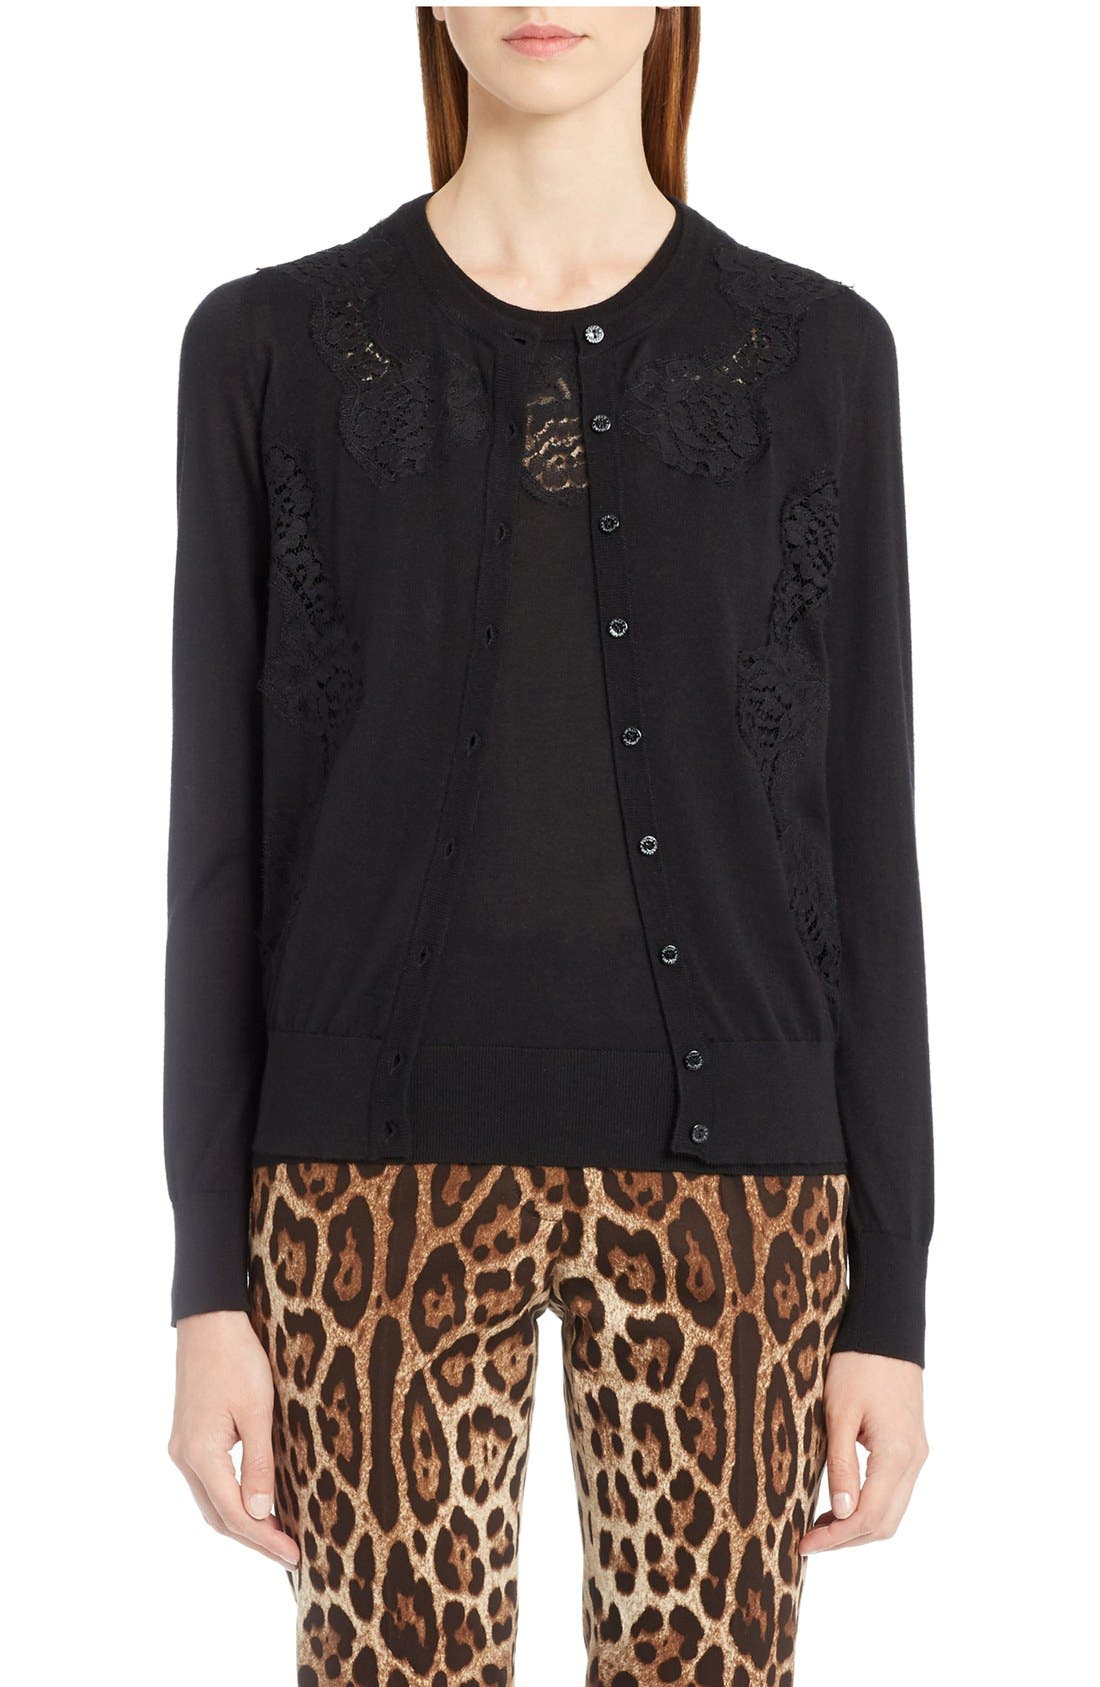 Dolce&Gabbana Lace Inset Cashmere Blend Cardigan